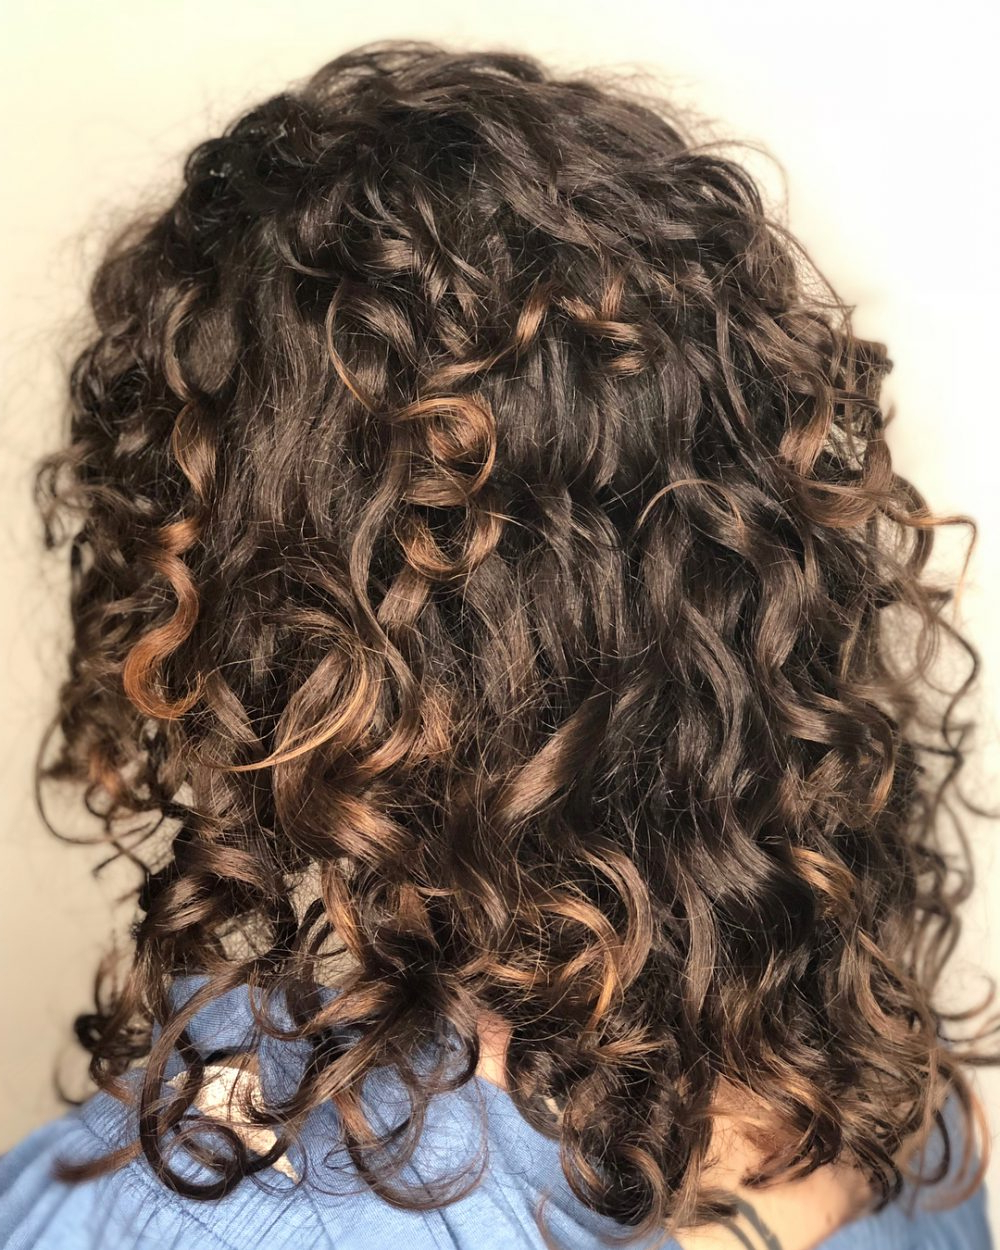 26 Best Shoulder Length Curly Hair Cuts & Styles In 2021 Within 2018 Medium Length Curls Hairstyles With Caramel Highlights (View 15 of 20)